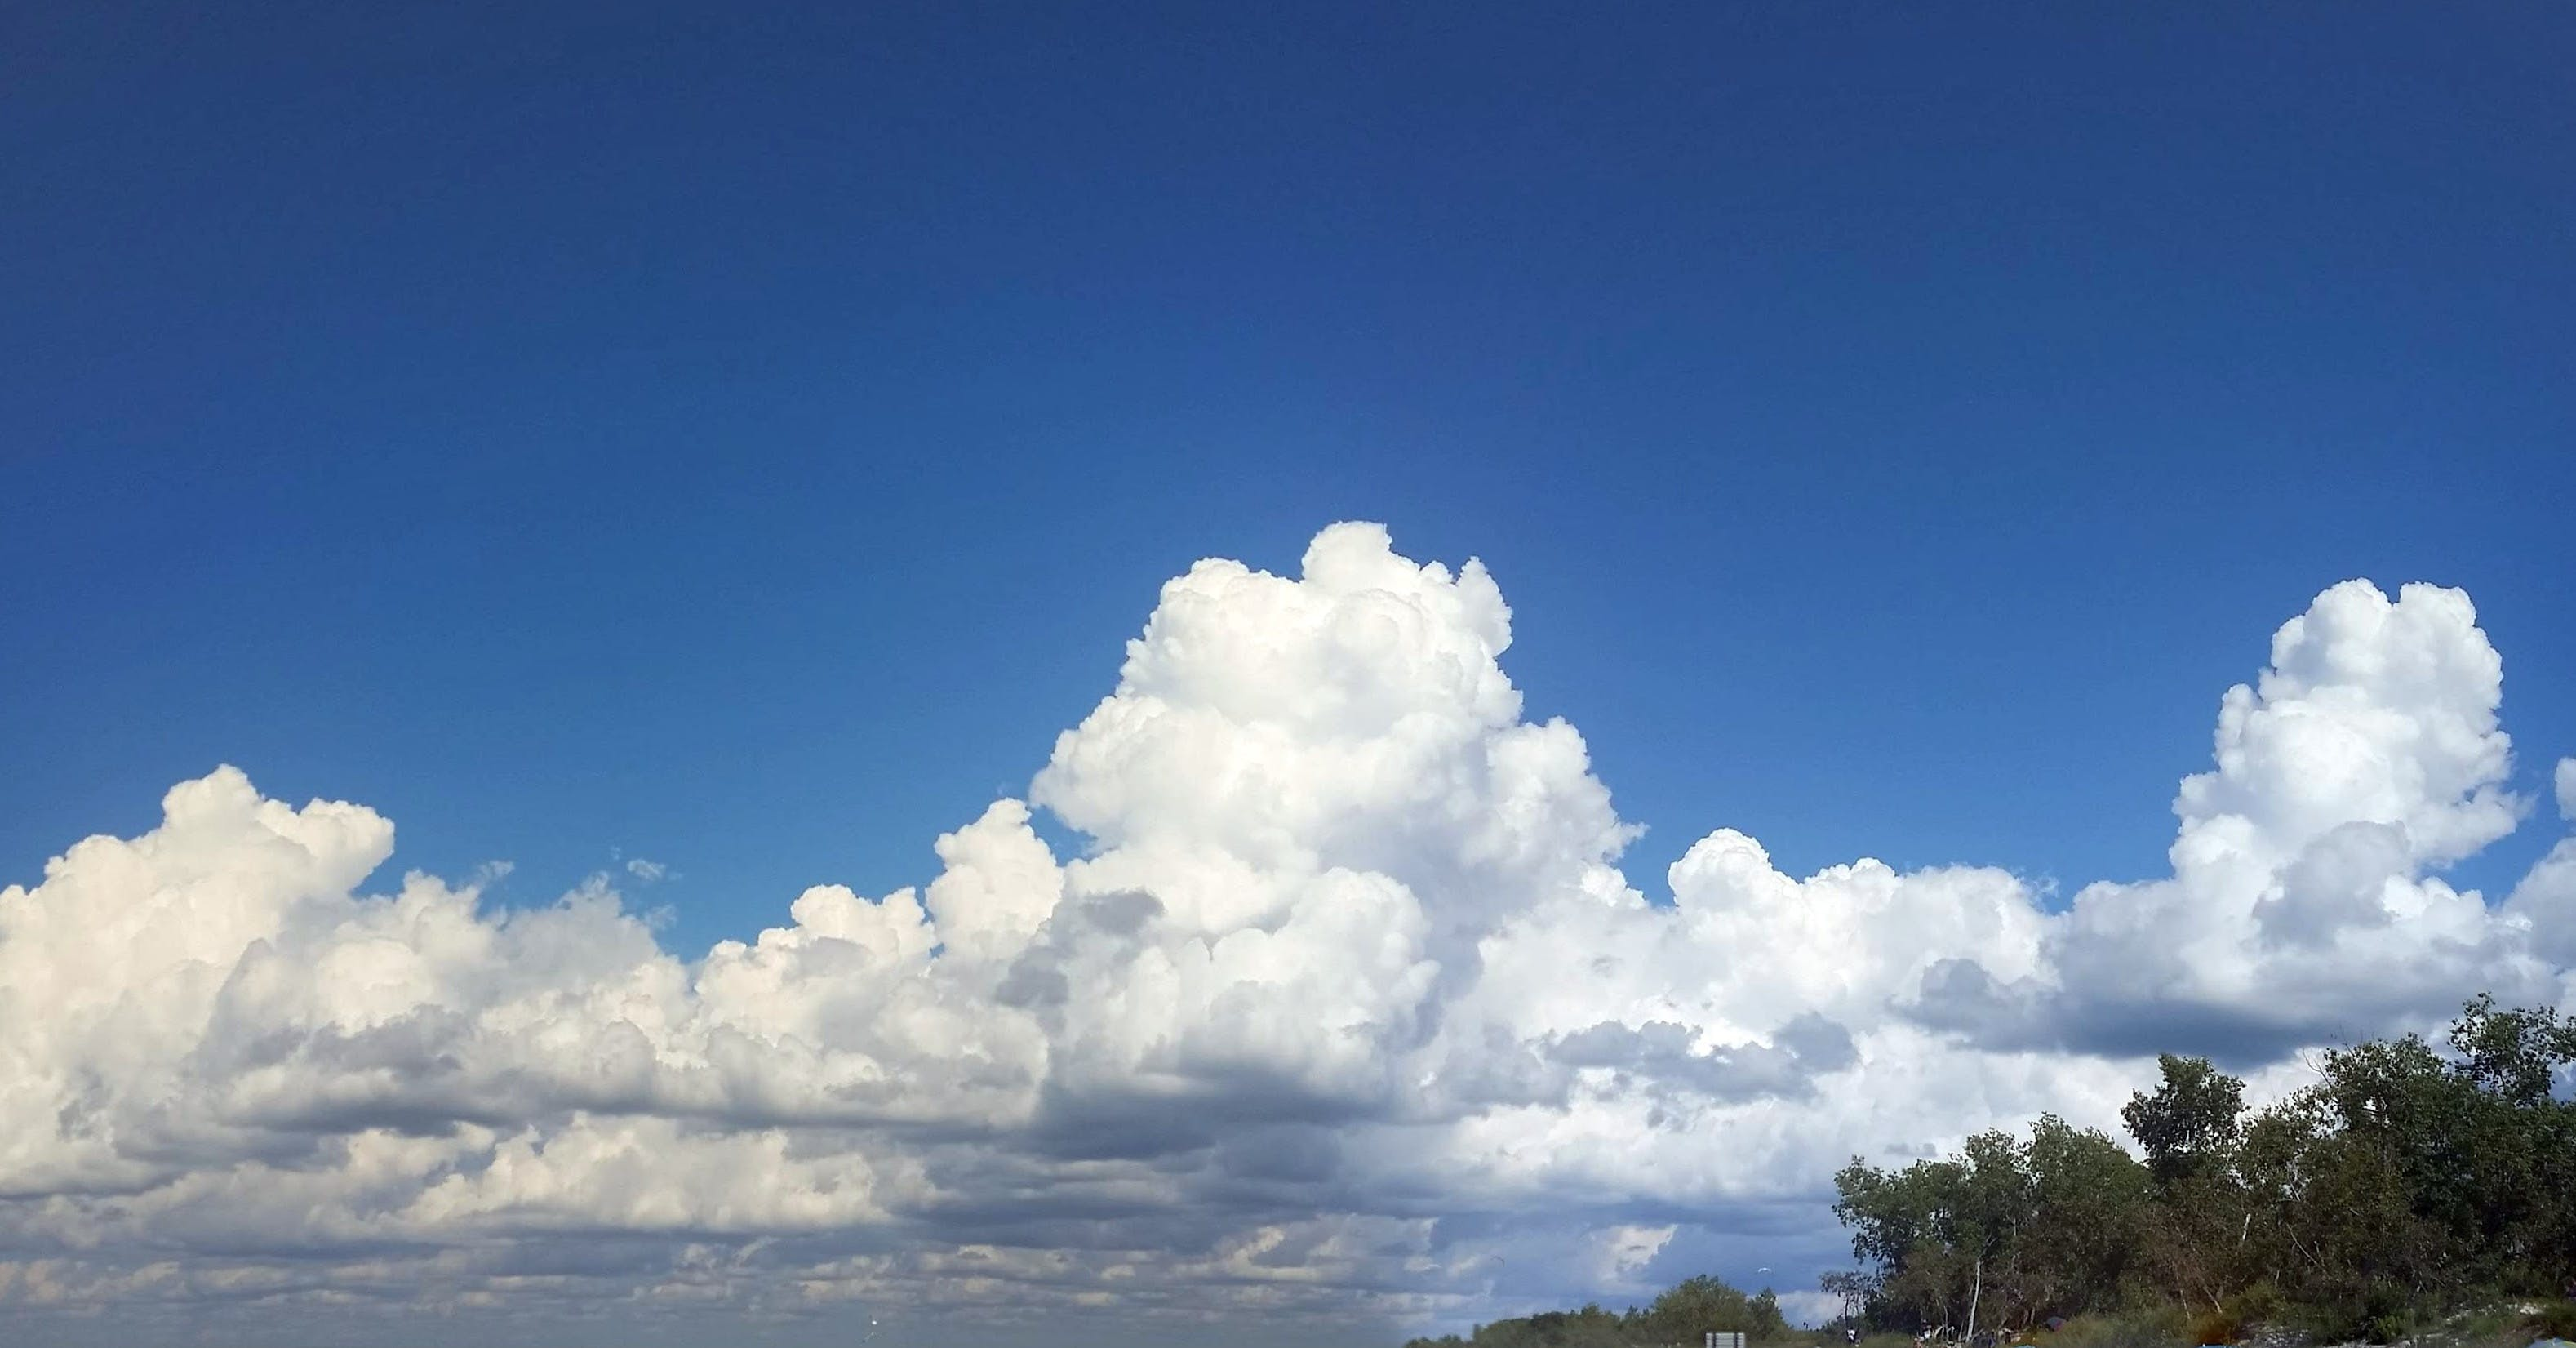 Free stock photo of blue skies, cloud formation, clouds, sea of clouds